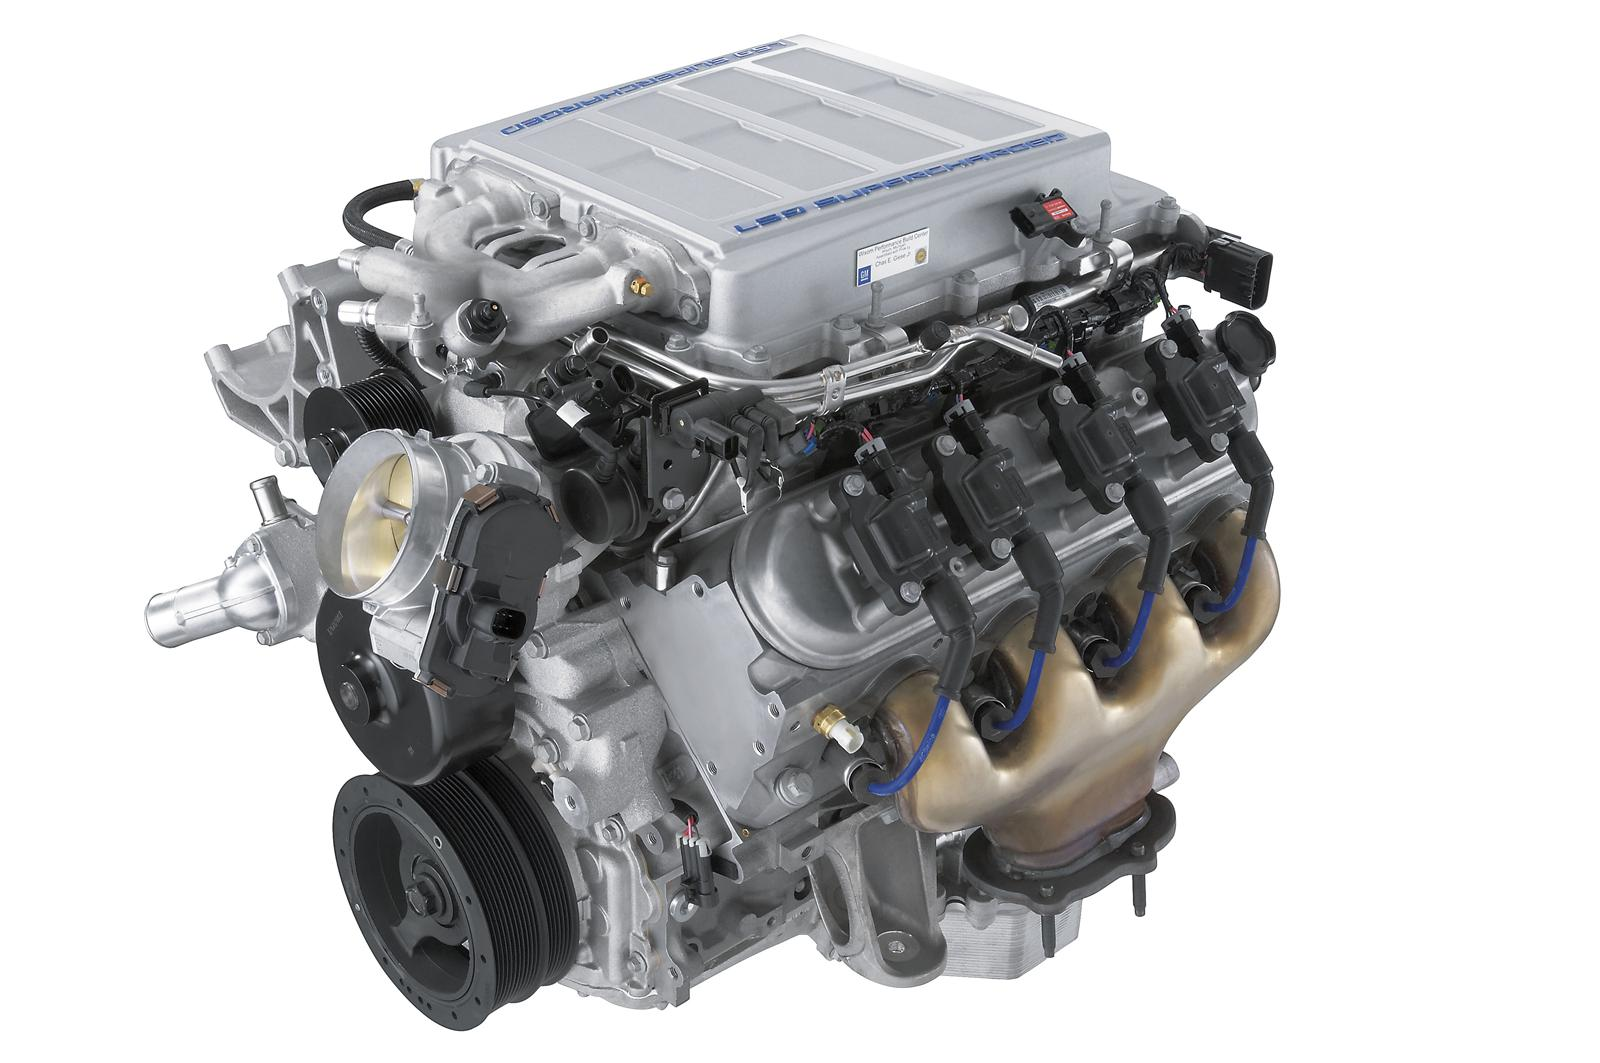 Chevrolet LS9 Supercharged V8 Engine